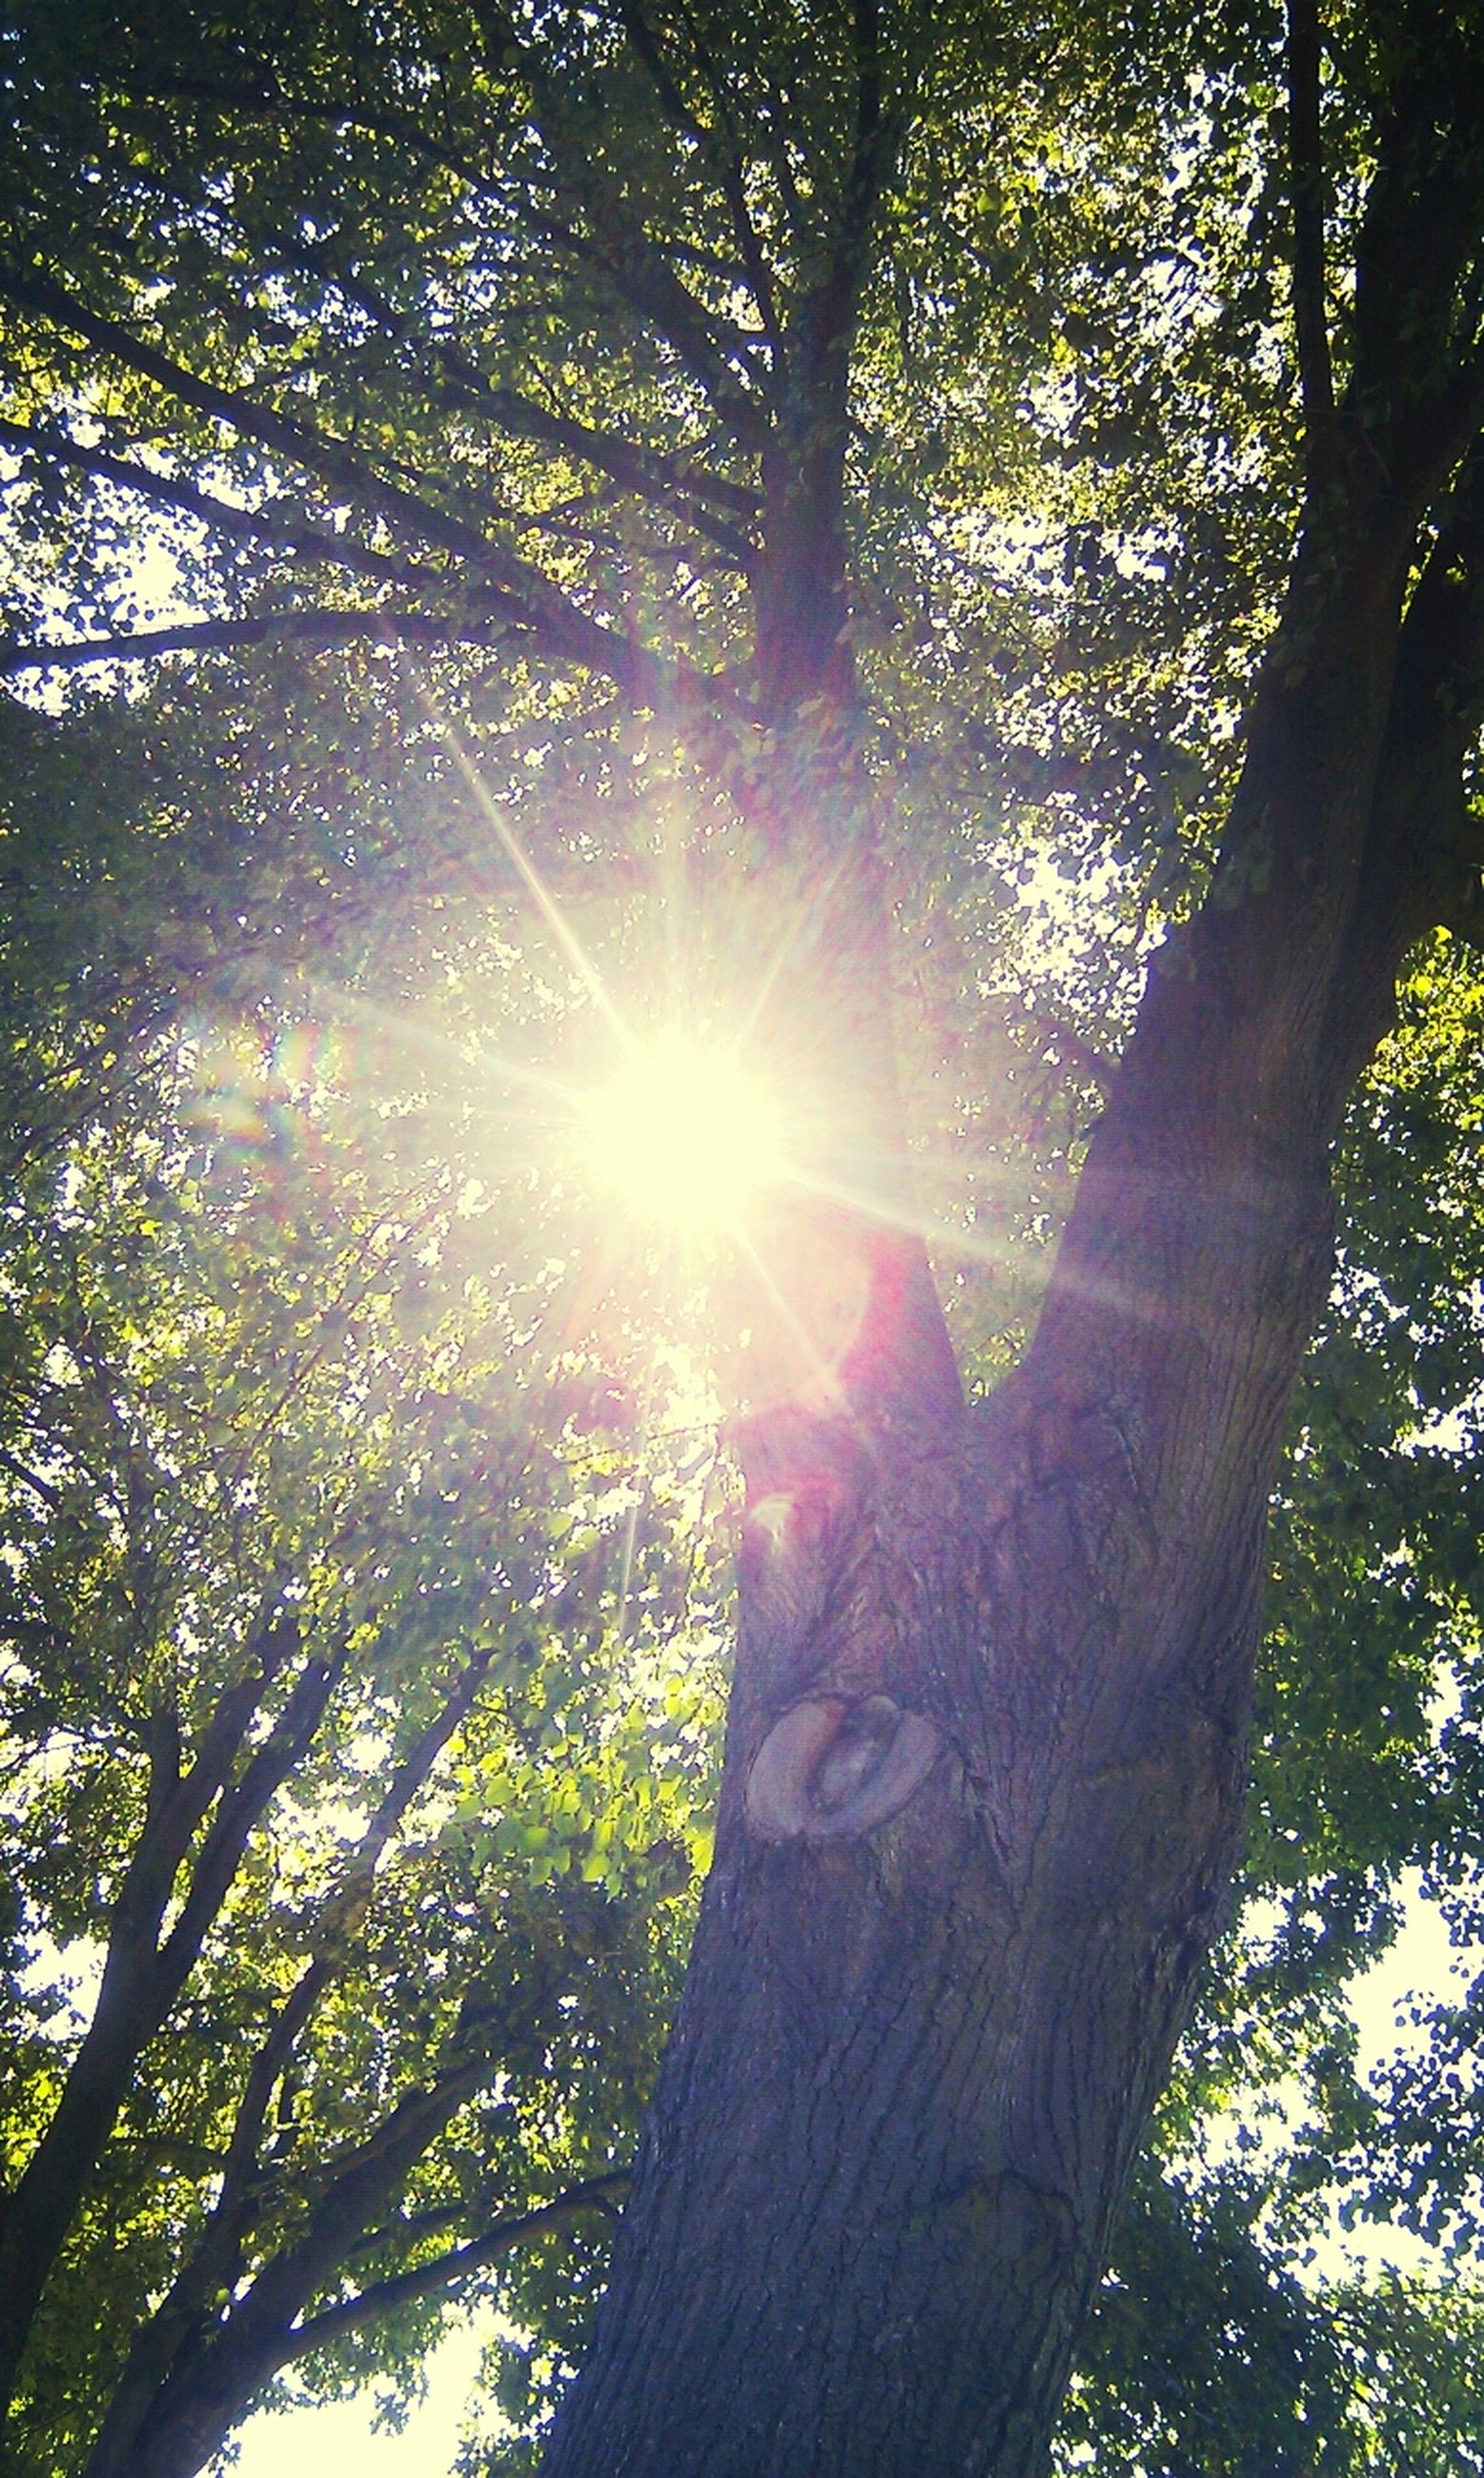 tree, low angle view, sun, sunbeam, sunlight, lens flare, tree trunk, branch, forest, one person, nature, growth, tranquility, back lit, day, sky, sunny, beauty in nature, outdoors, silhouette